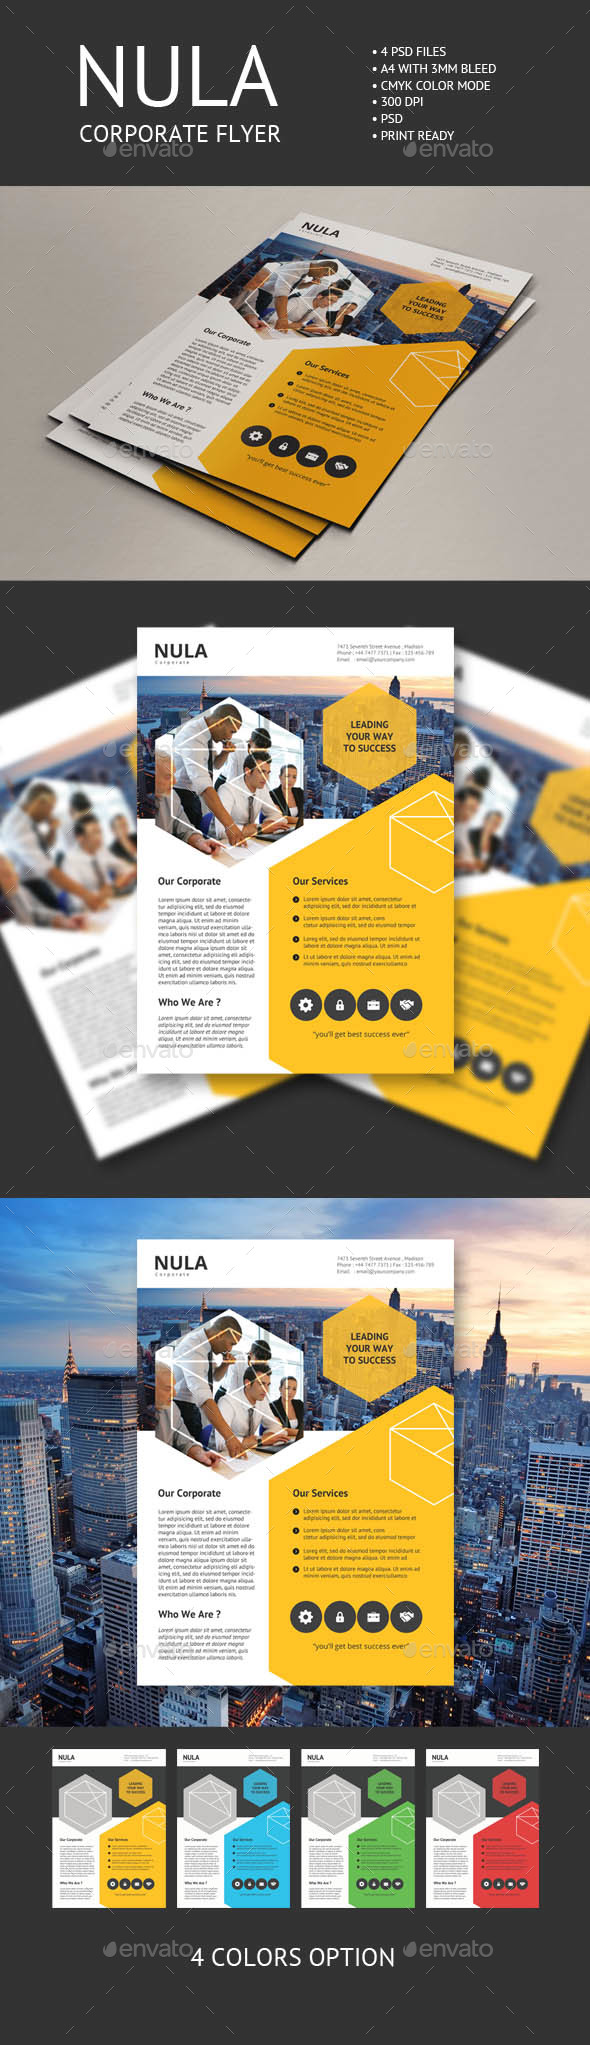 Nula Corporate Flyer - Corporate Flyers